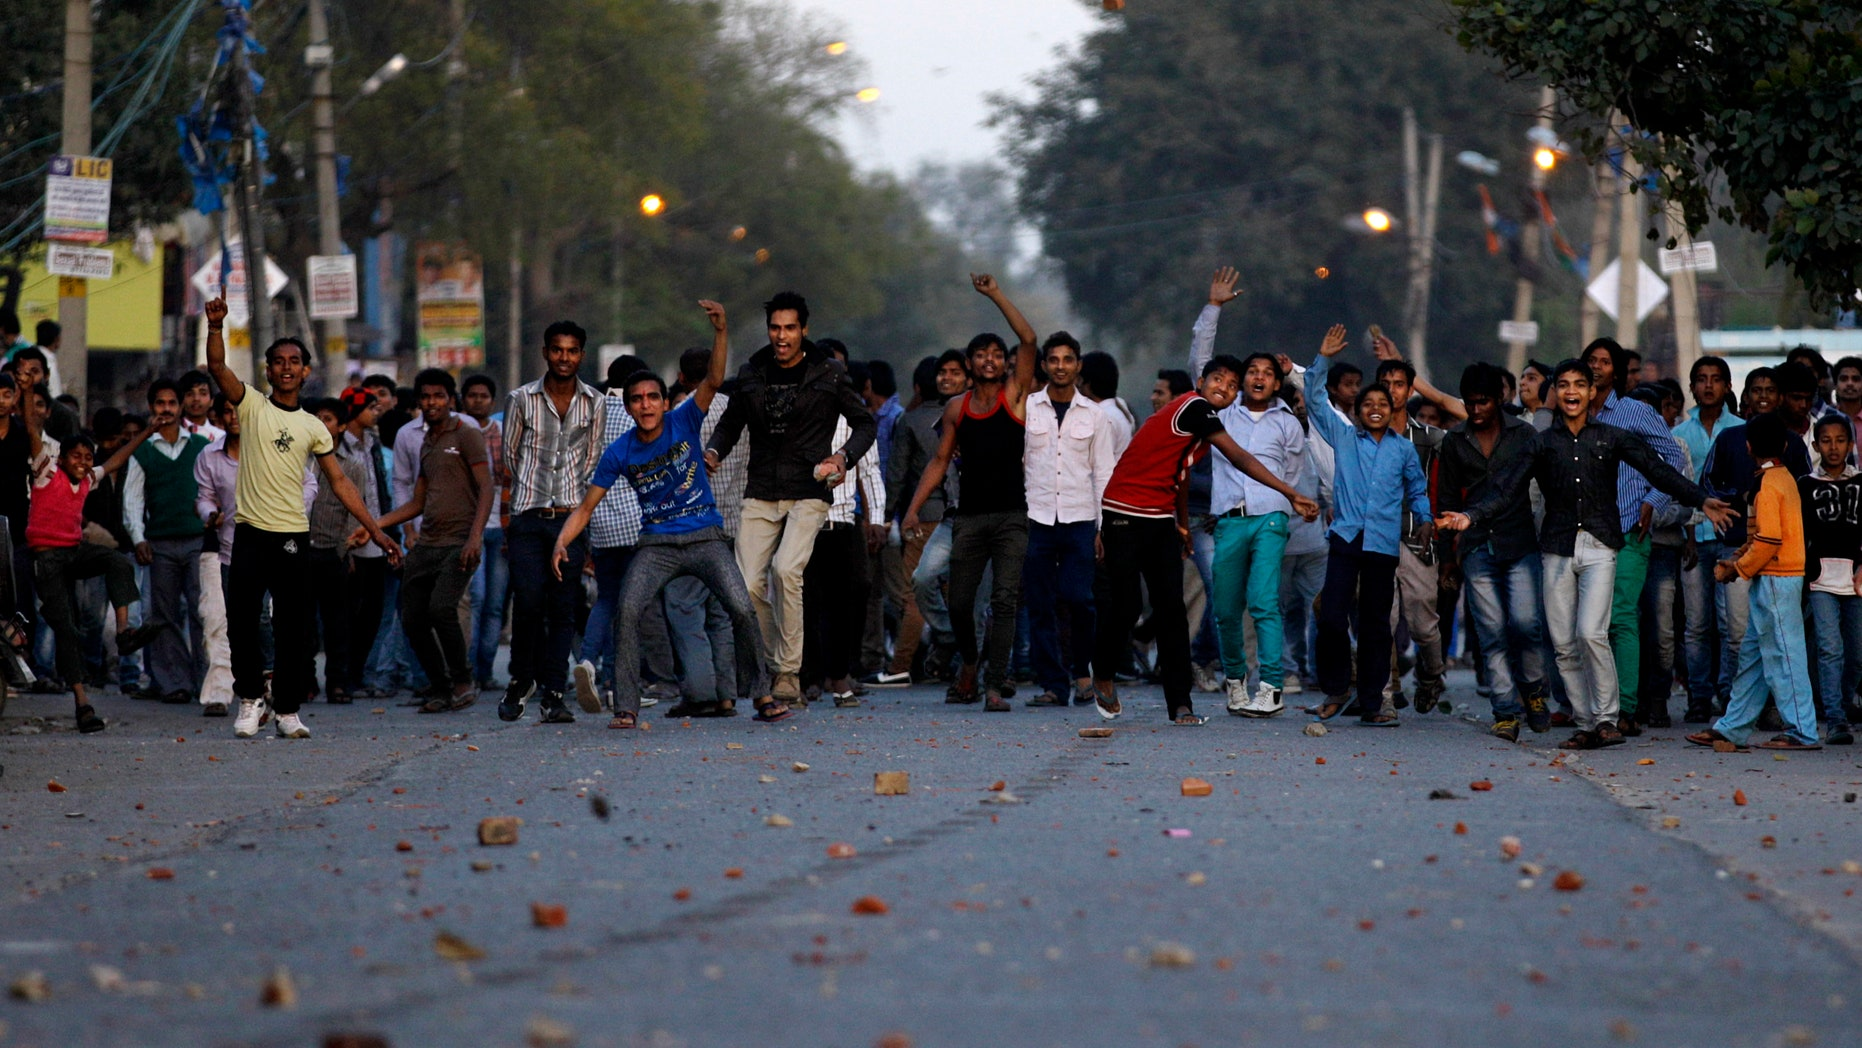 March 1, 2013 - Indian protesters hurl stones towards police officers during a protest against the rape of a 7-year-old girl in New Delhi, India.